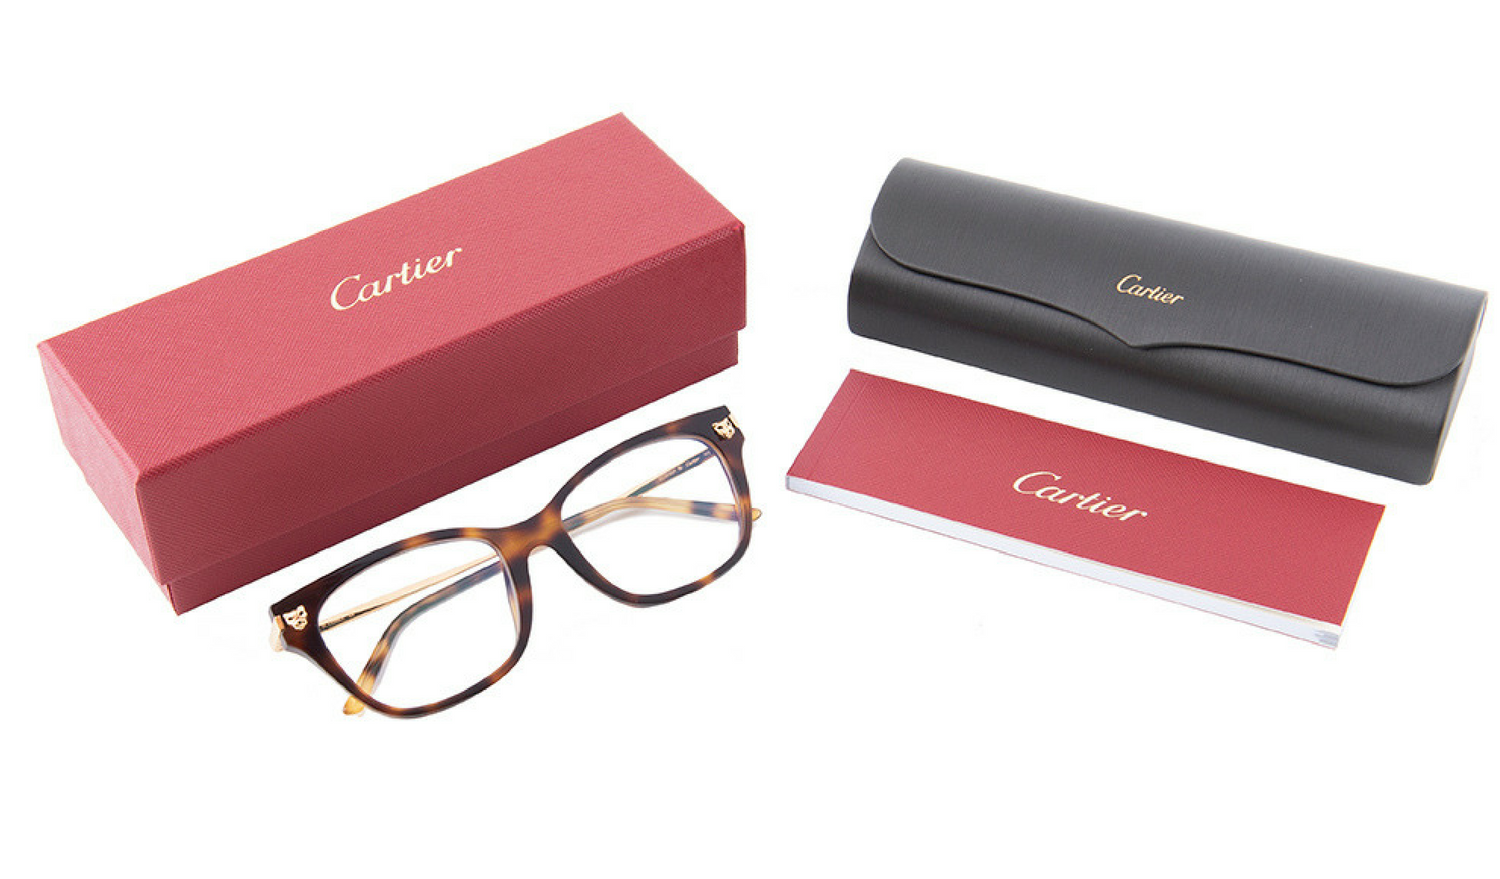 b9b0ff39fd How to tell if you have purchases fake cartier glasses. Real Cartier glasses  vs Fake cartier glasses